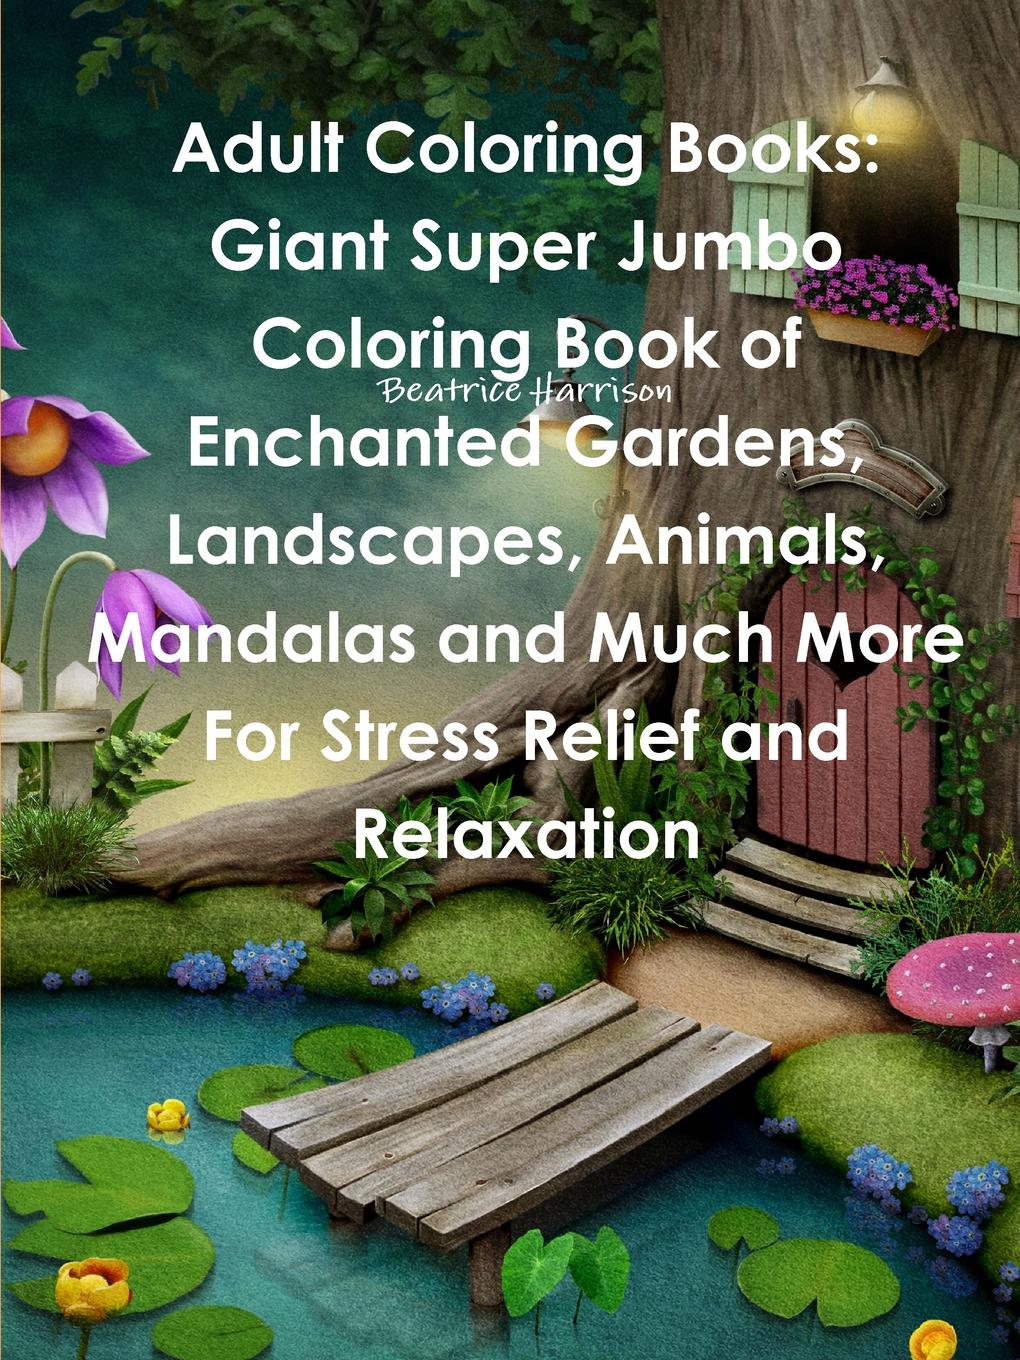 Beatrice Harrison Adult Coloring Books. Giant Super Jumbo Coloring Book of Enchanted Gardens, Landscapes, Animals, Mandalas and Much More For Stress Relief and Relaxation colorful hexagon fidget spinner adhd stress relief toy relaxation gift for adults